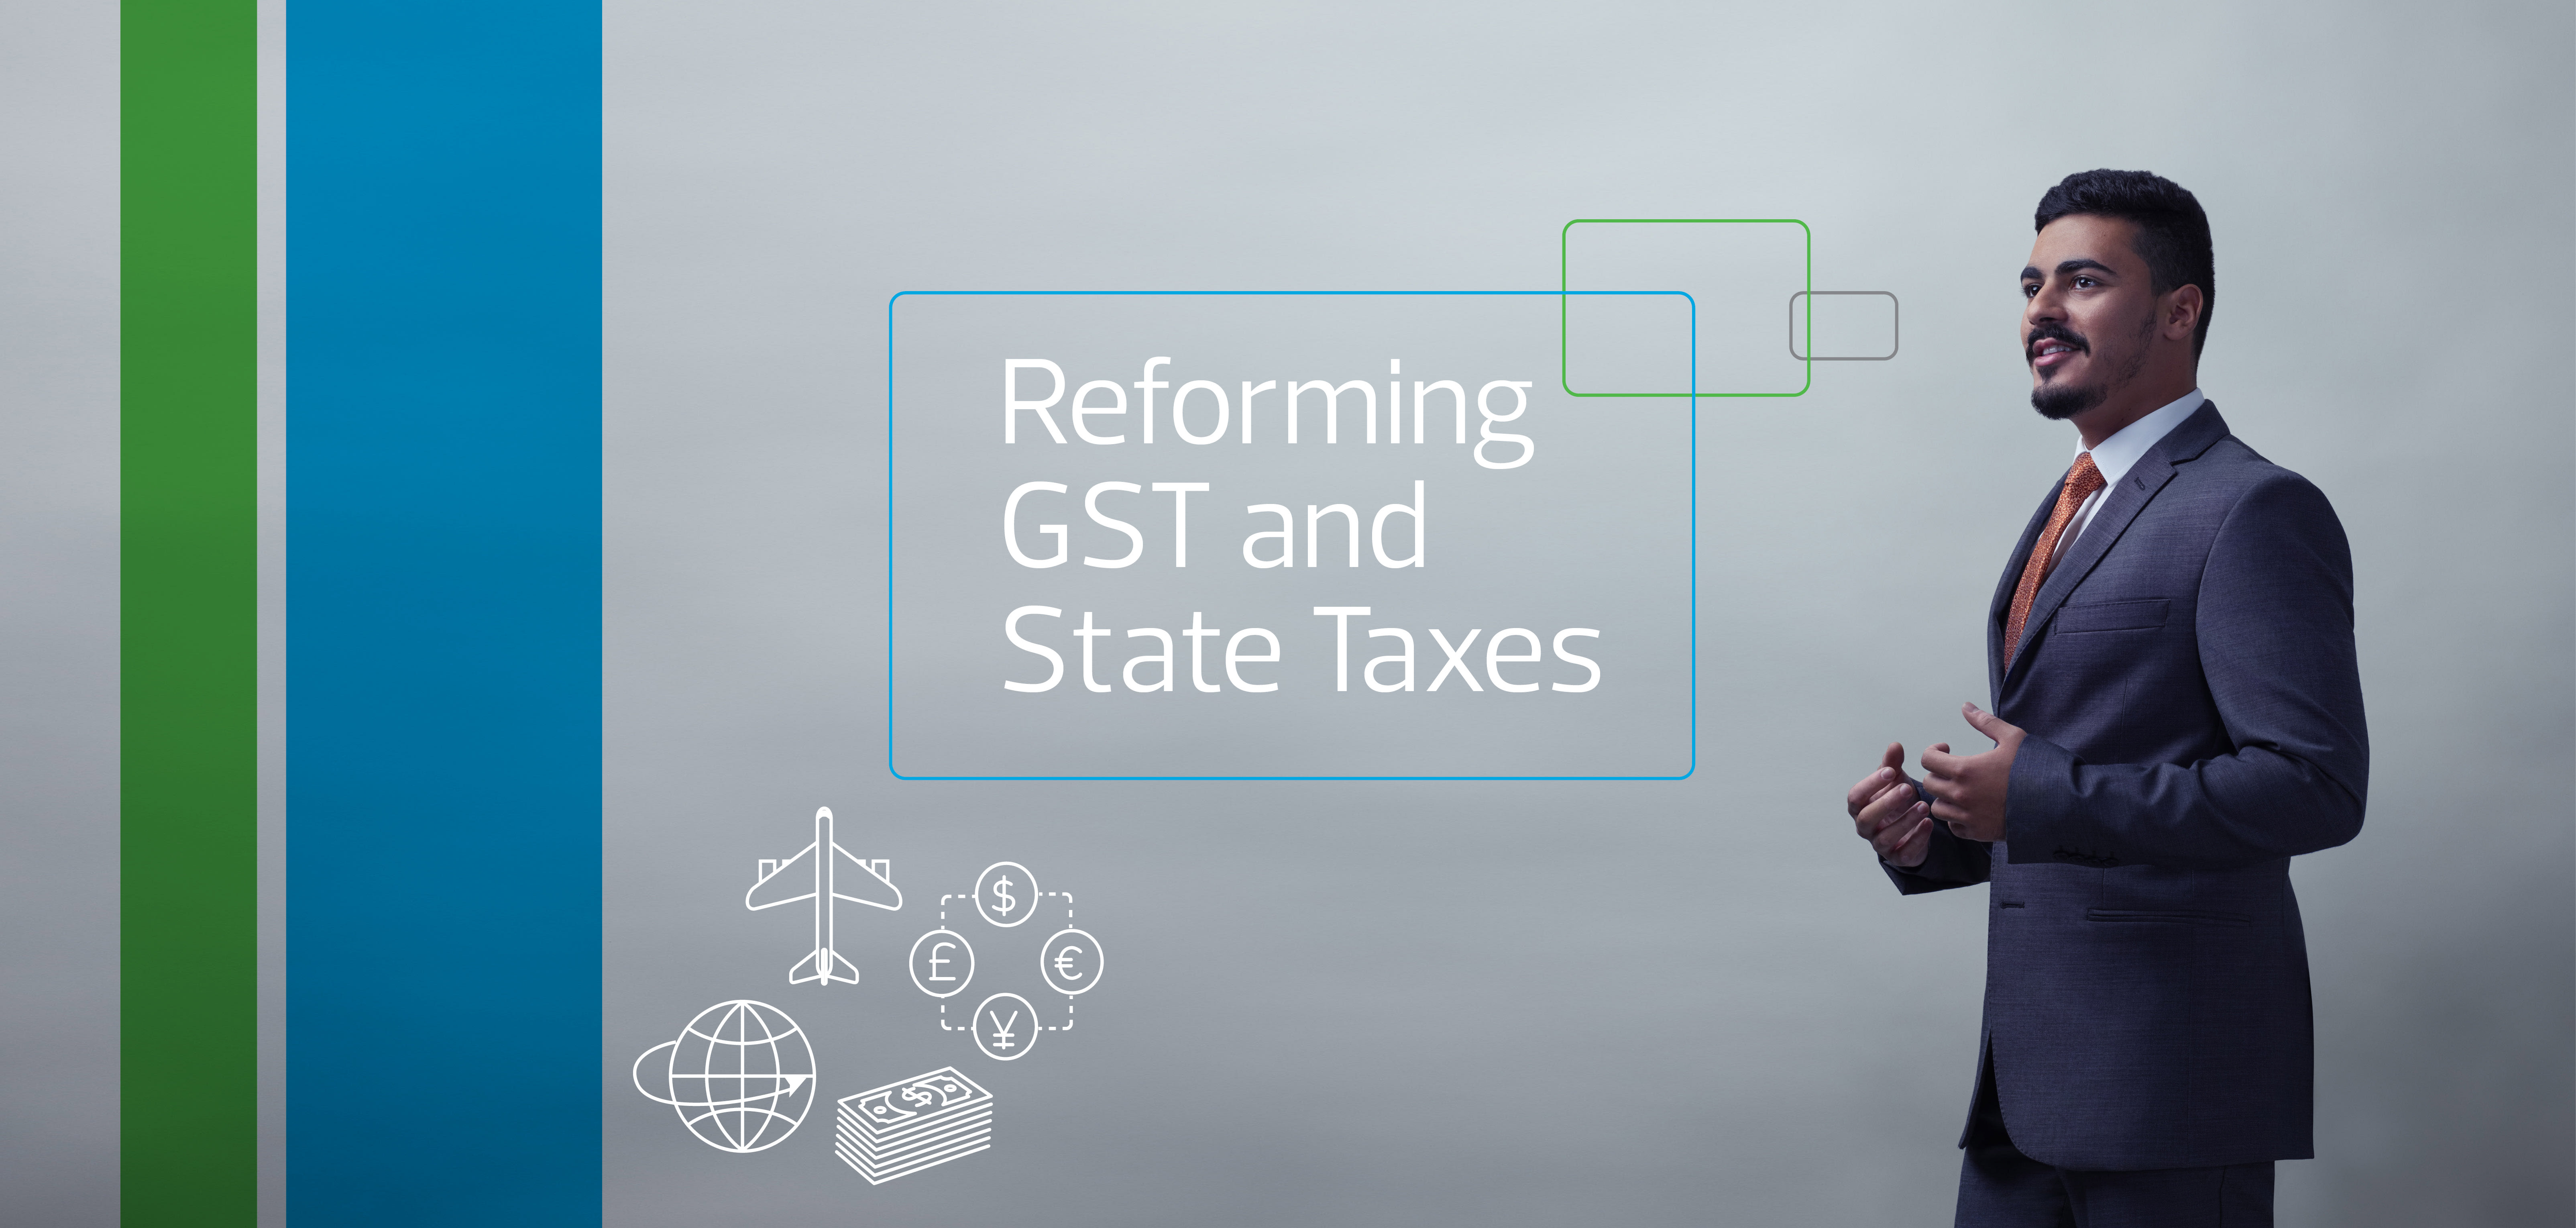 public://media/2020-07-09_reforming_gst_and_state_taxes_thumbnail_-_770_x_367.jpg